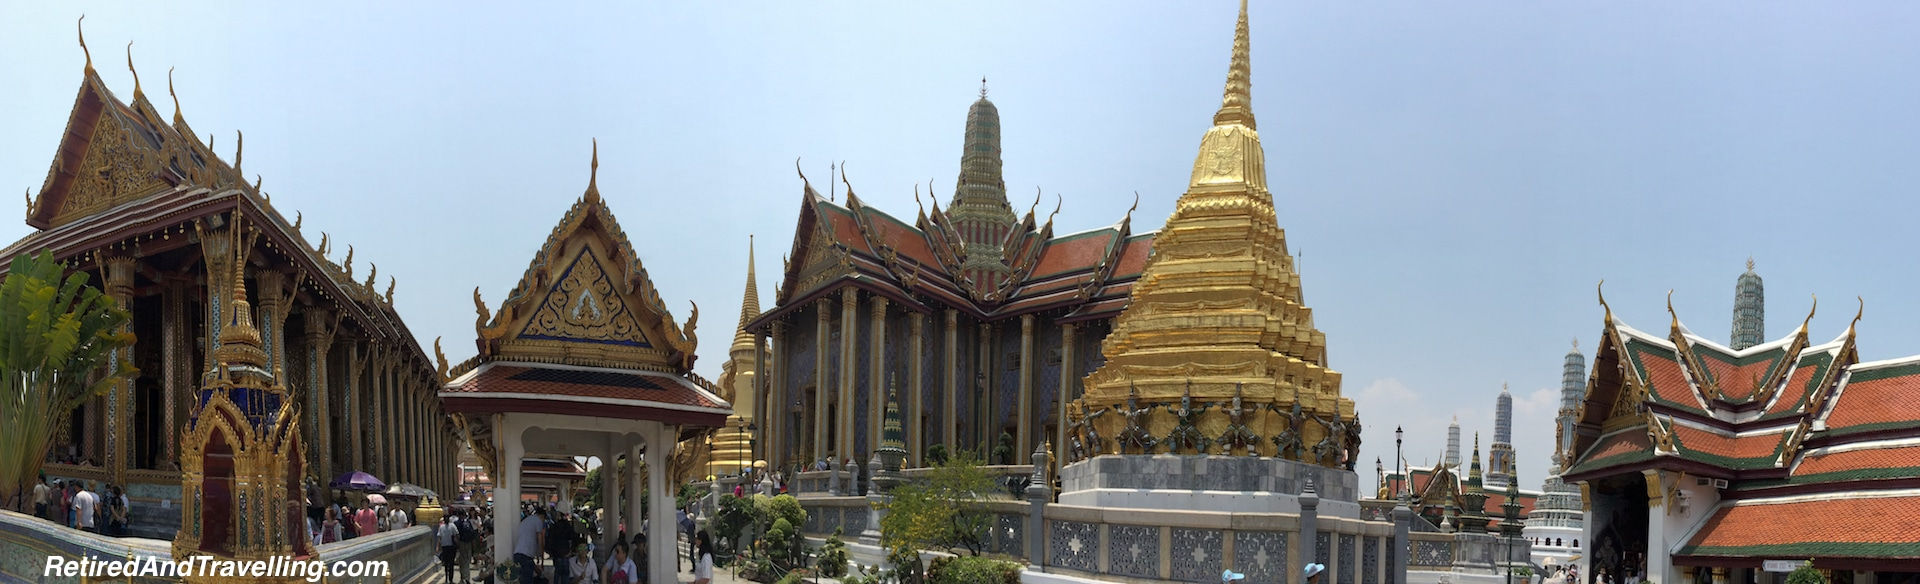 Bangkok Palace and Emerald Buddha Temple -Bangkok Temples.jpg